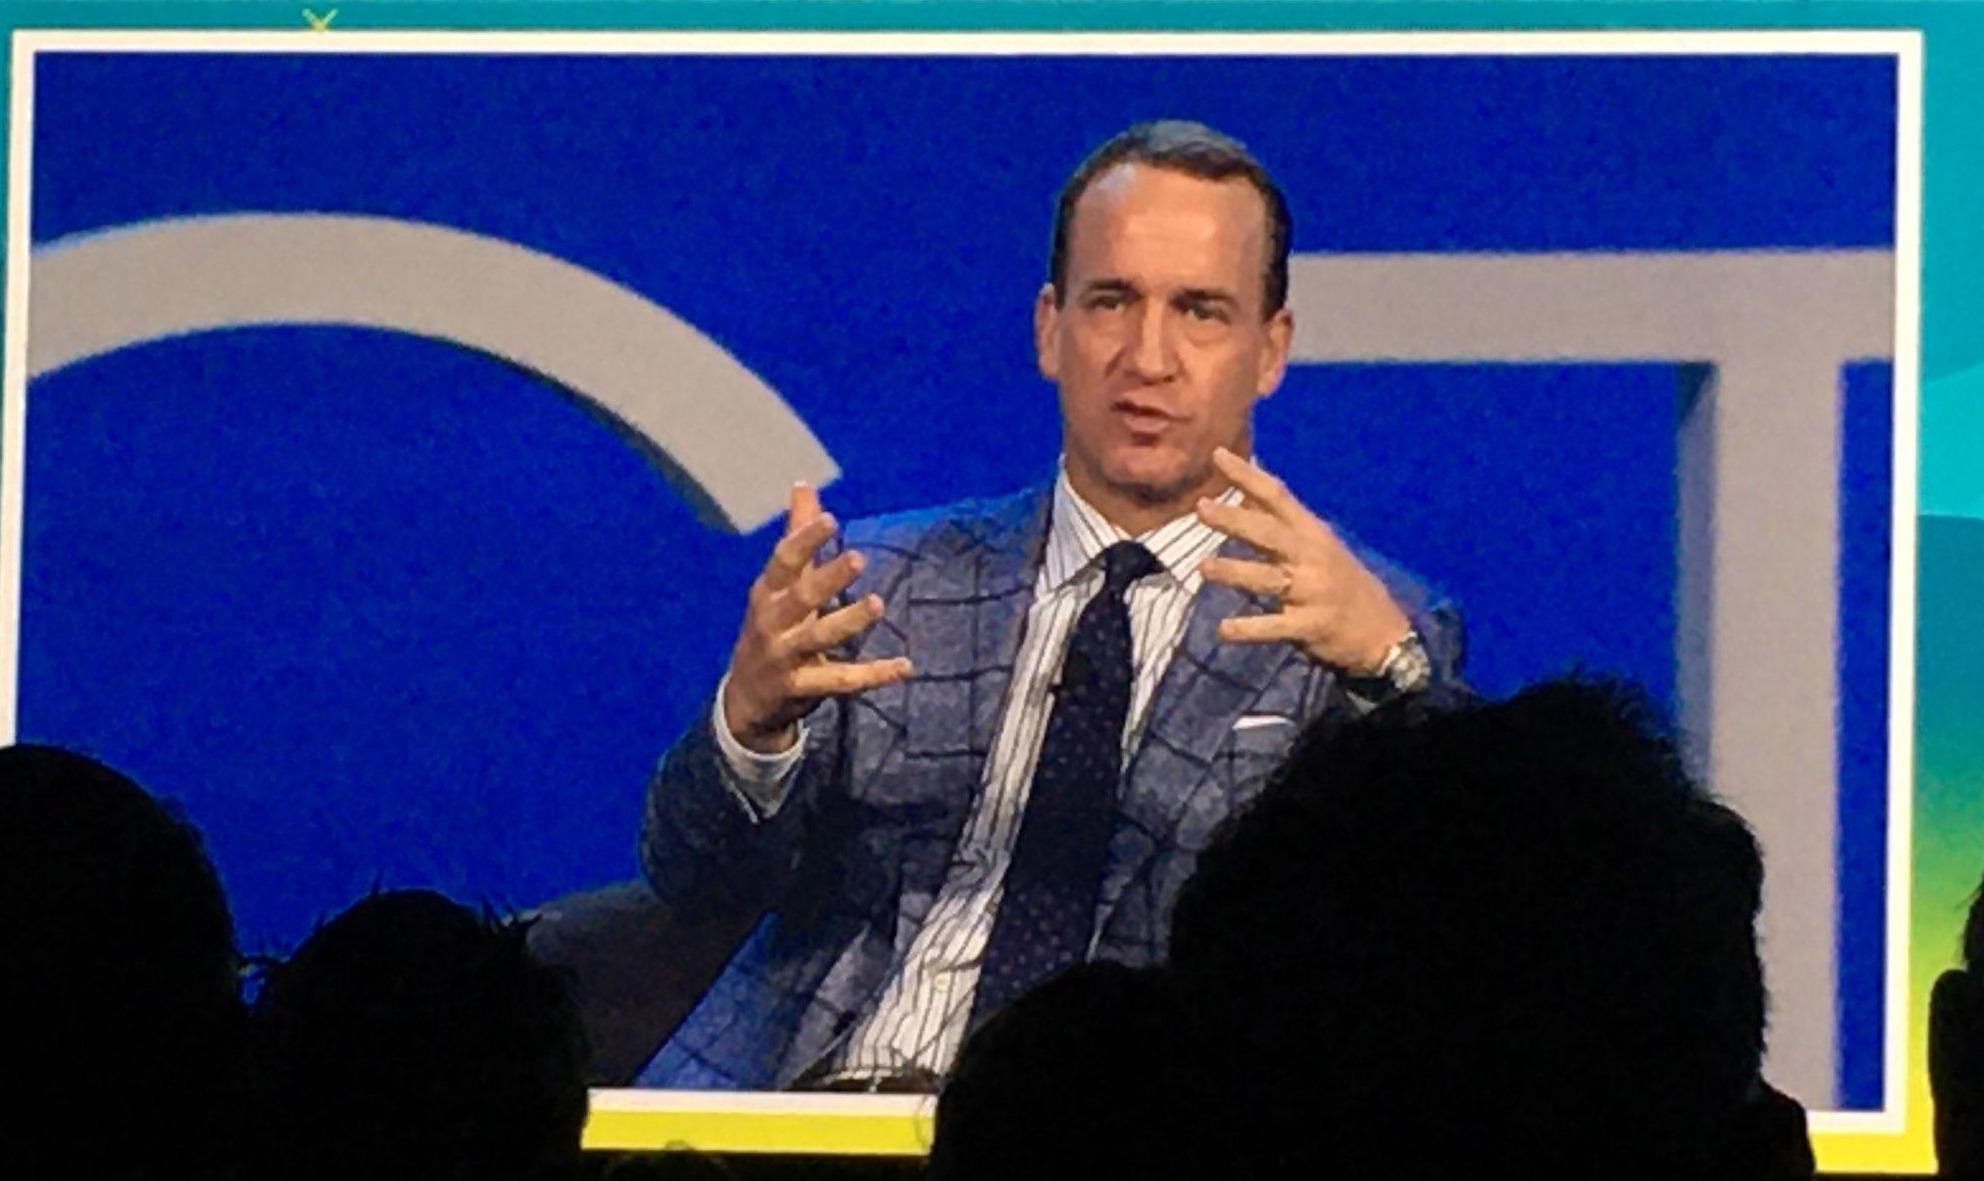 Peyton Manning, American former football quarterback as Guest Speaker for Connect Ed.  Thumbnail